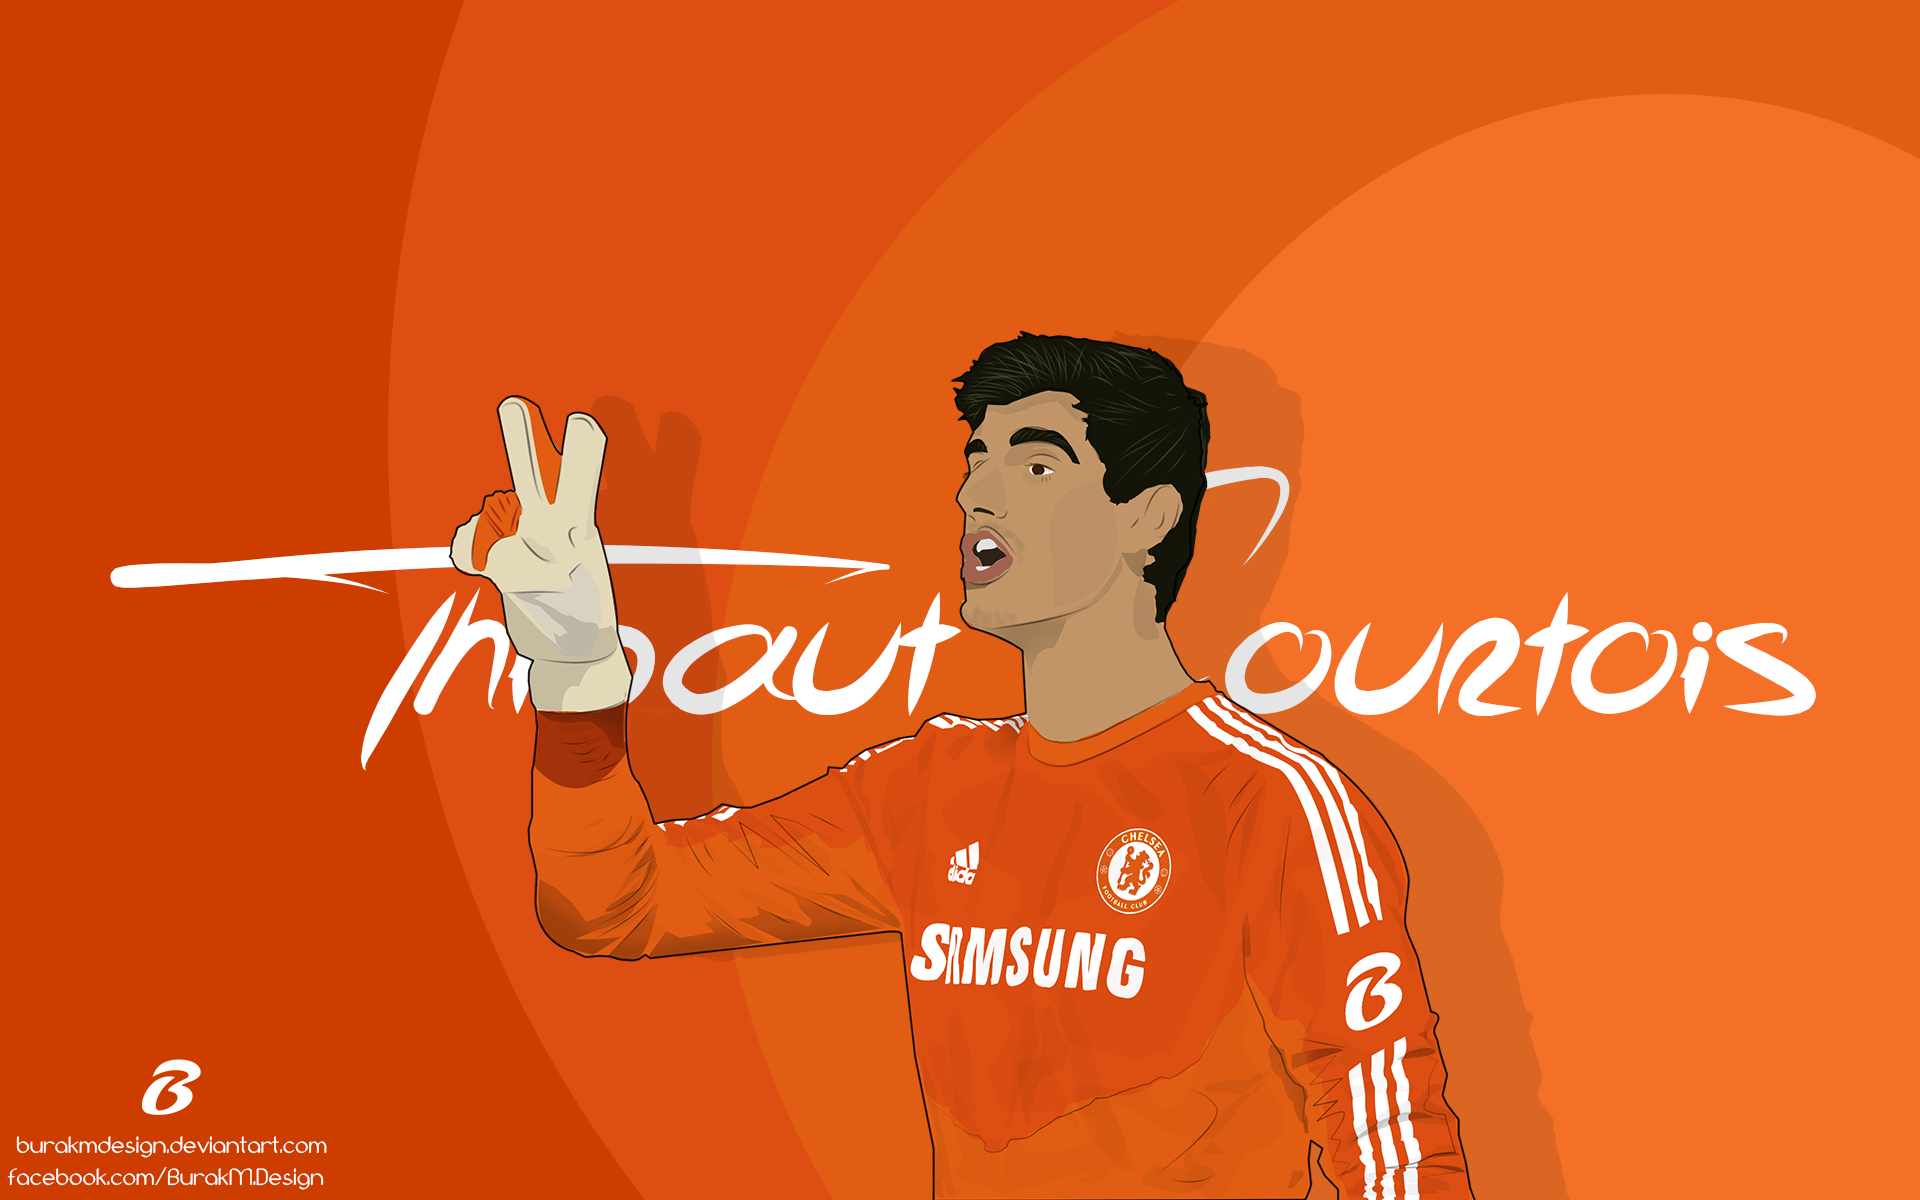 Thibaut Courtois Vector And Wallpaper By BurakMDesign On